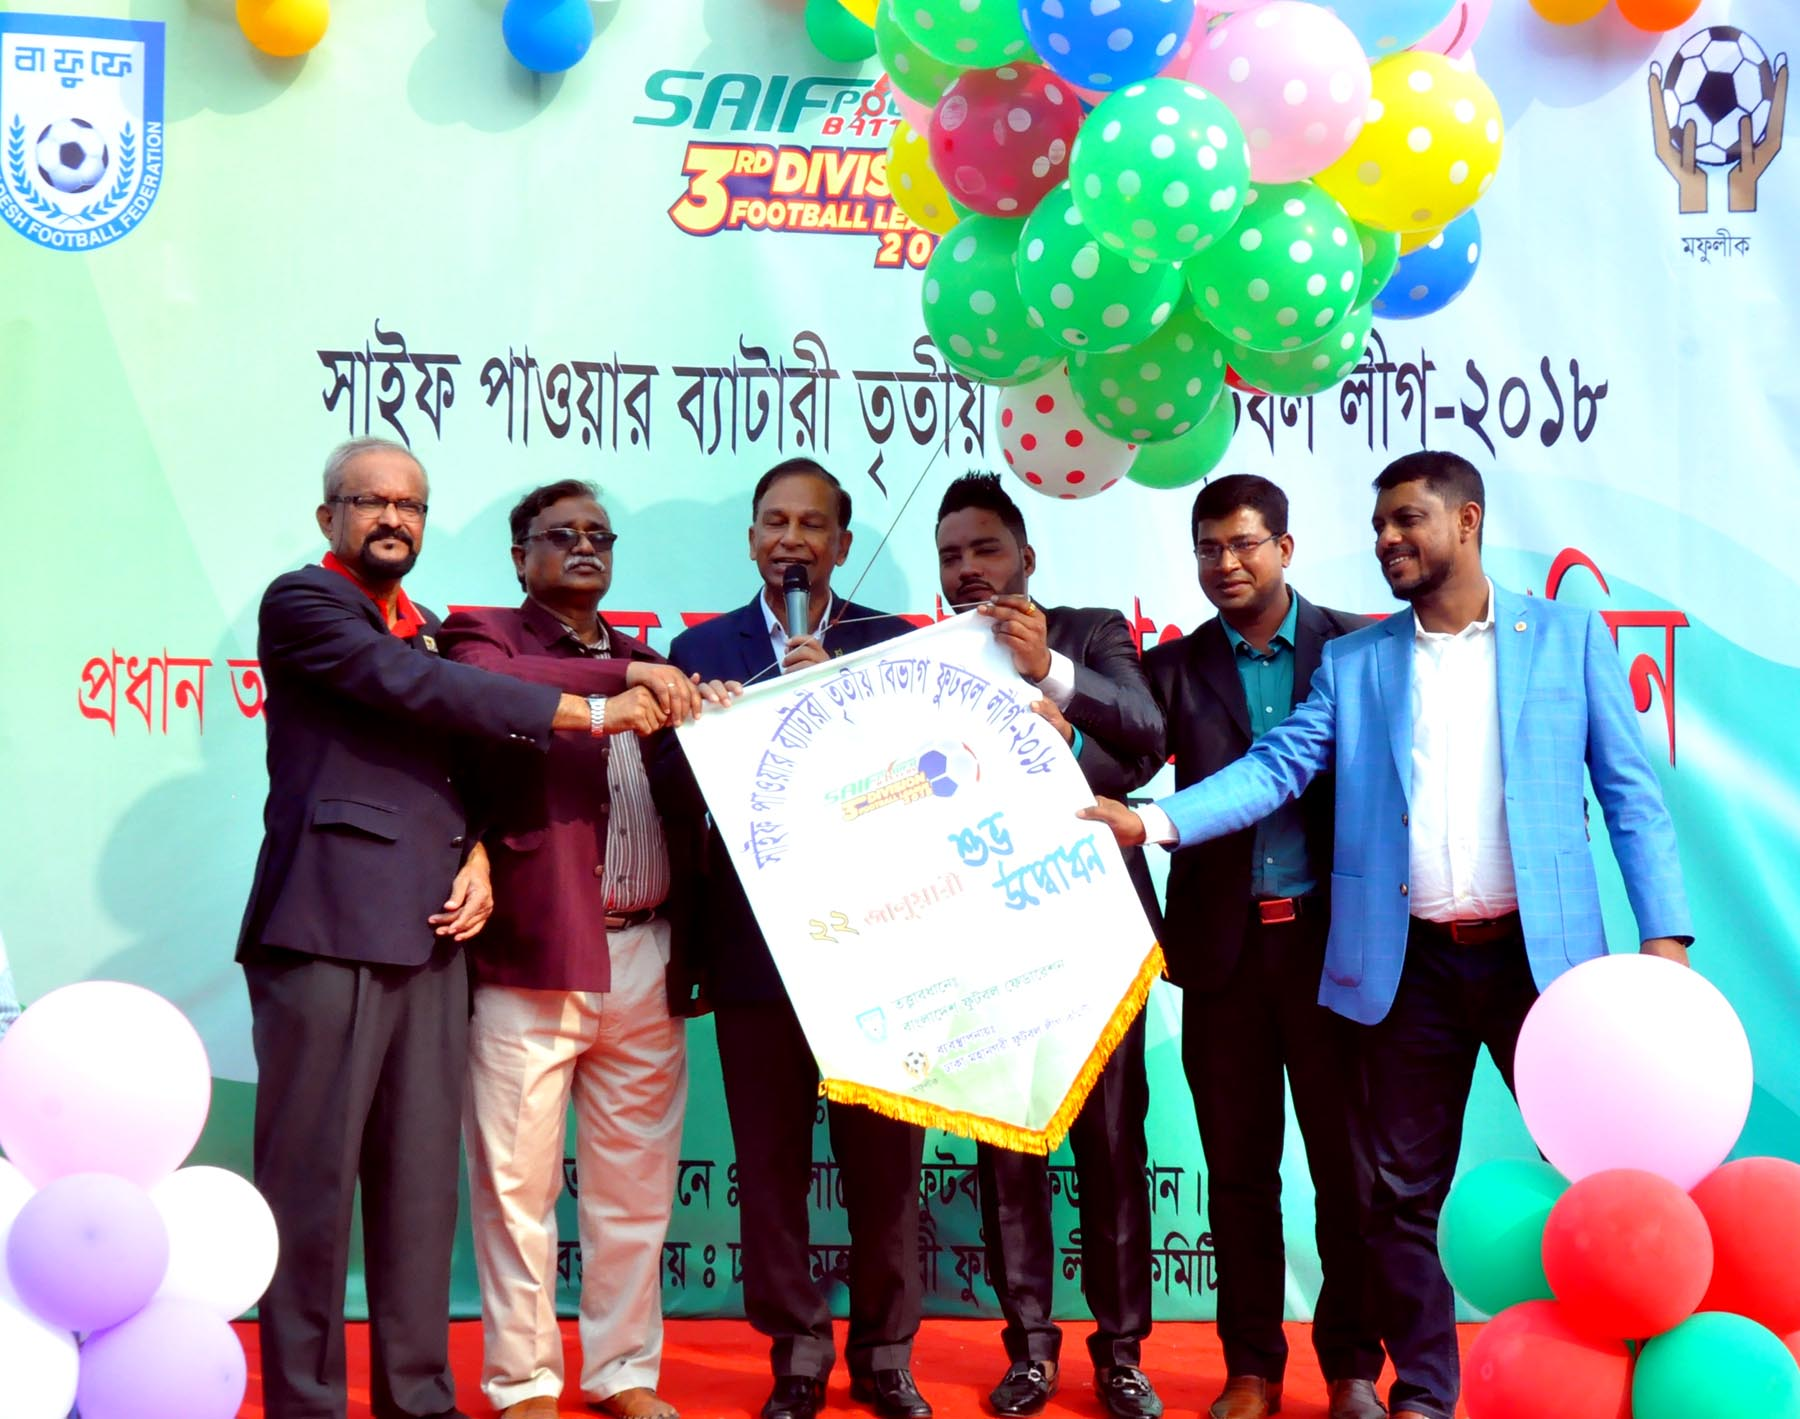 Chairman of the Dhaka Metropolis Football League Committee Harunur Rashid openning the Saif Power Battery Third Division Football League at the Bir Shreshtha Shaheed Sepoy Mohammad Mostafa Kamal Stadium in the city's Kamalapur on Monday.